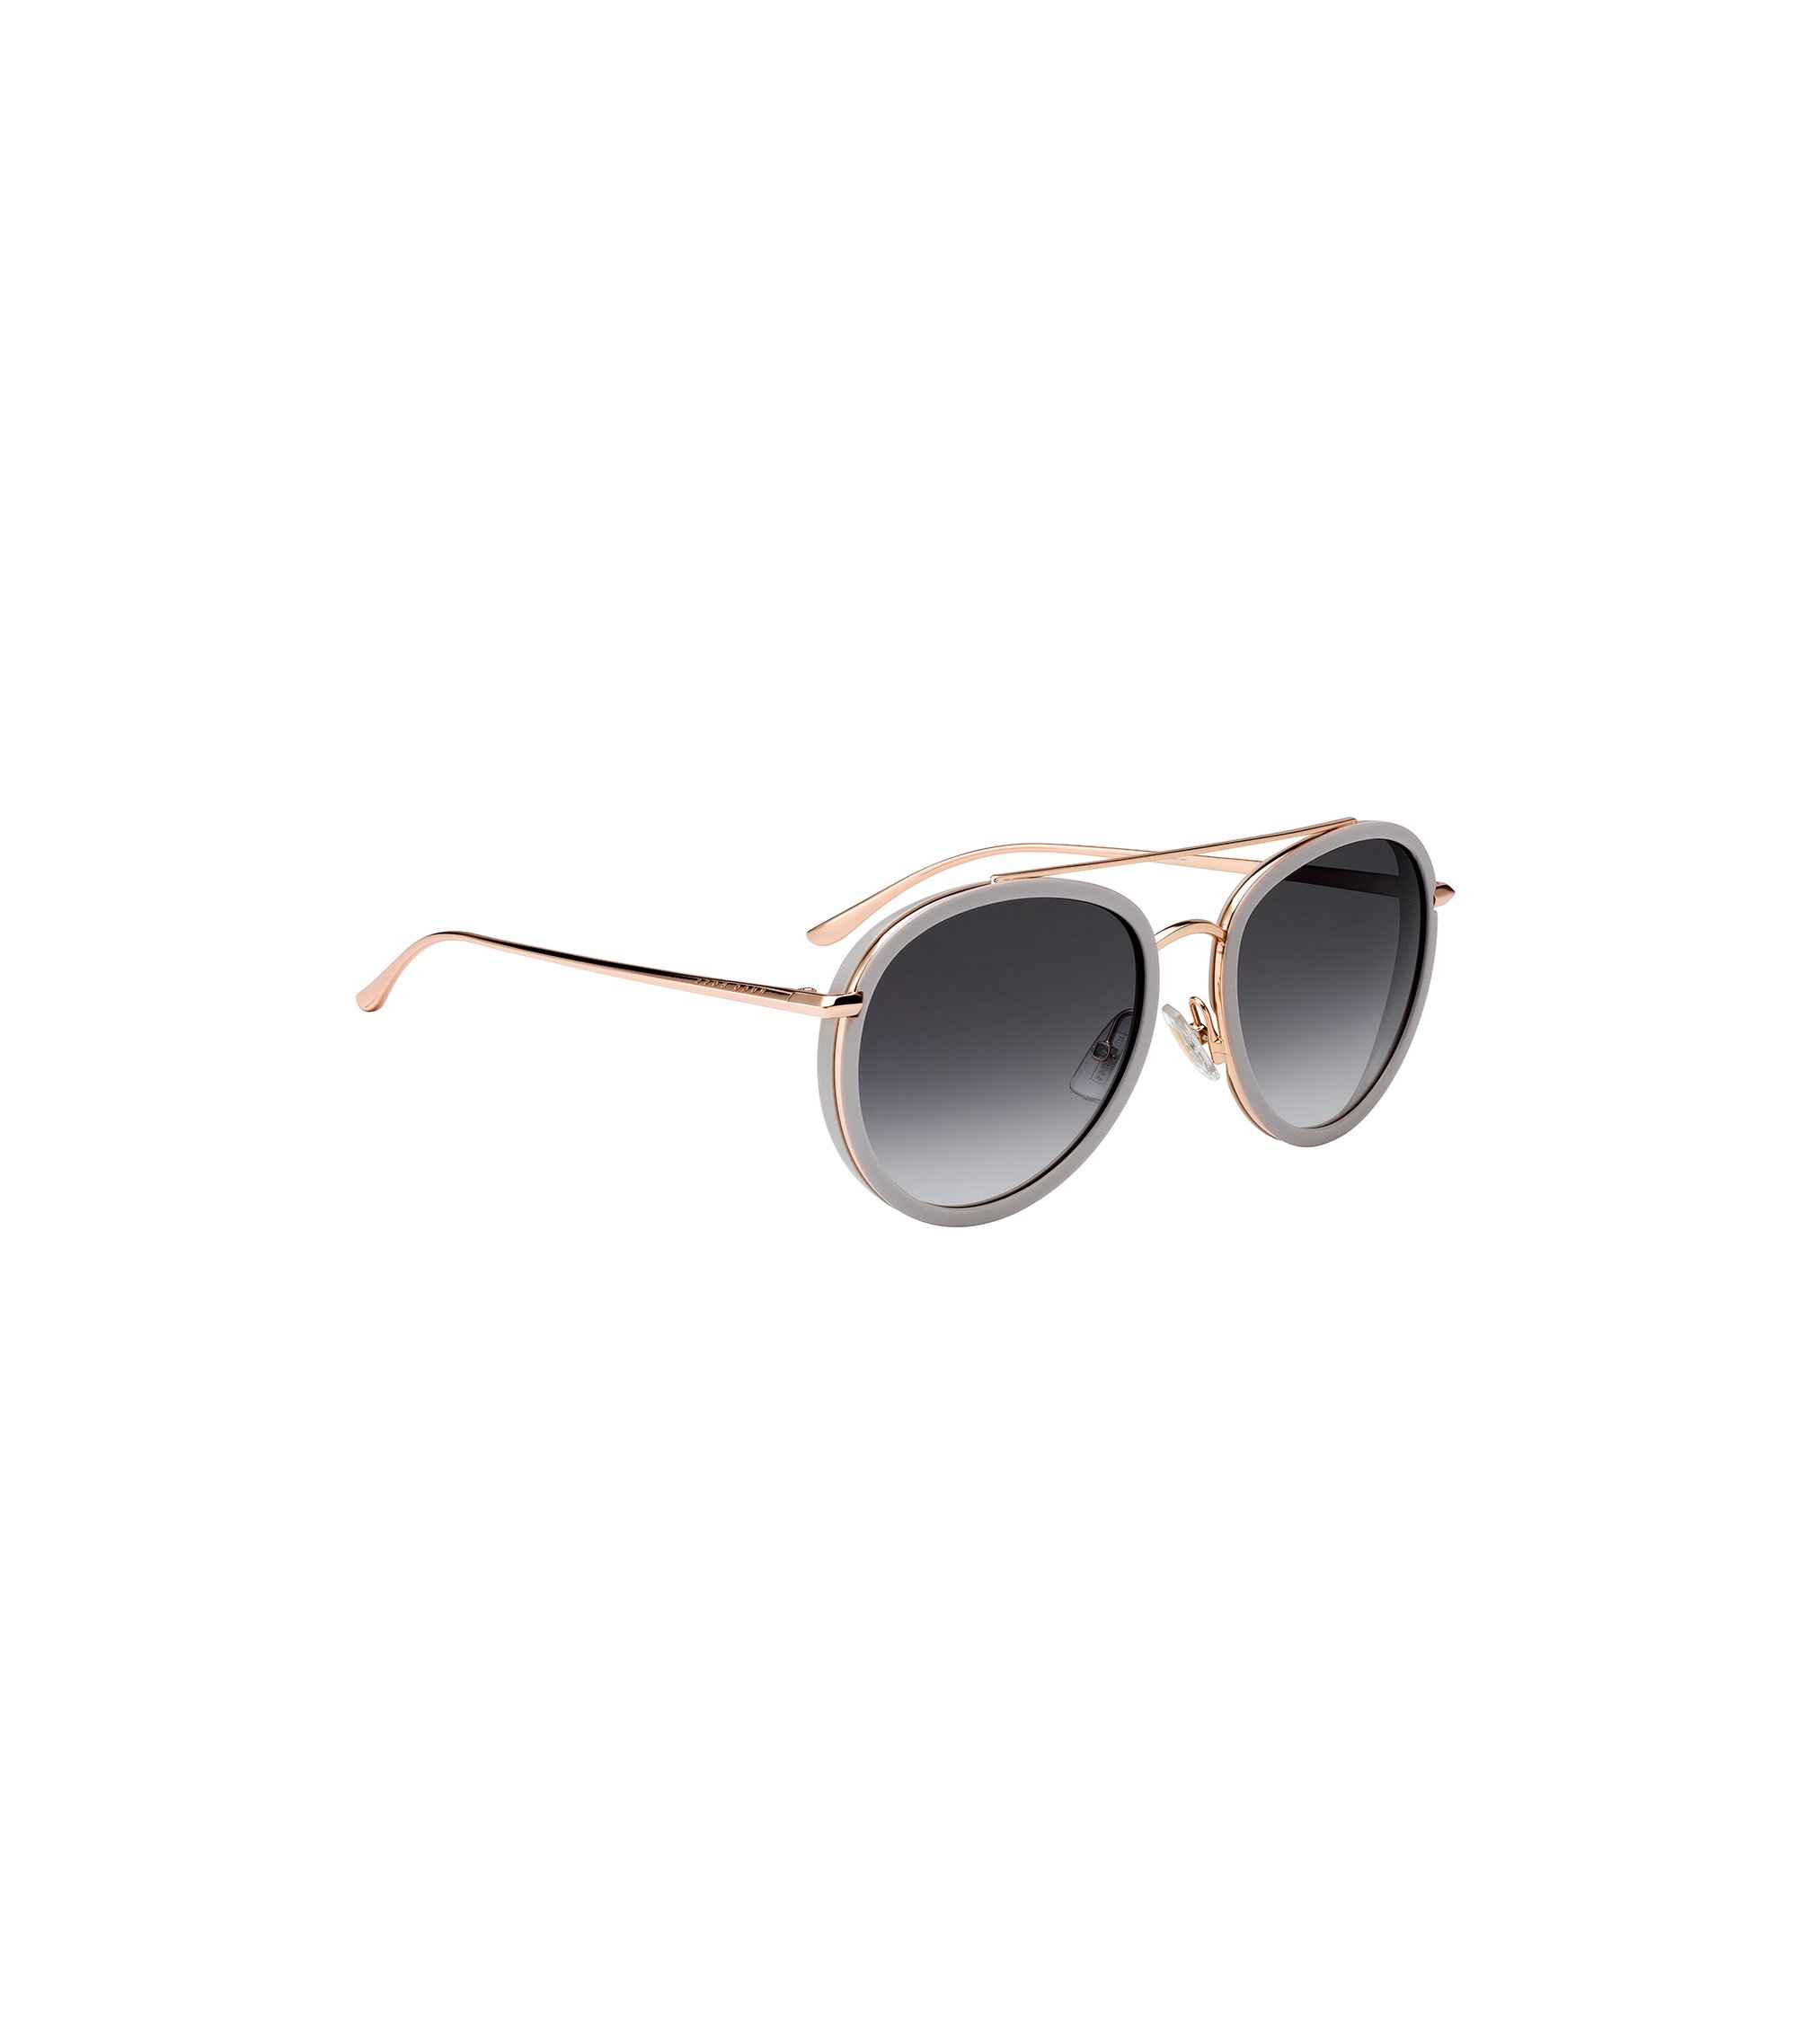 Double-bridge sunglasses with shaded lenses, Gold